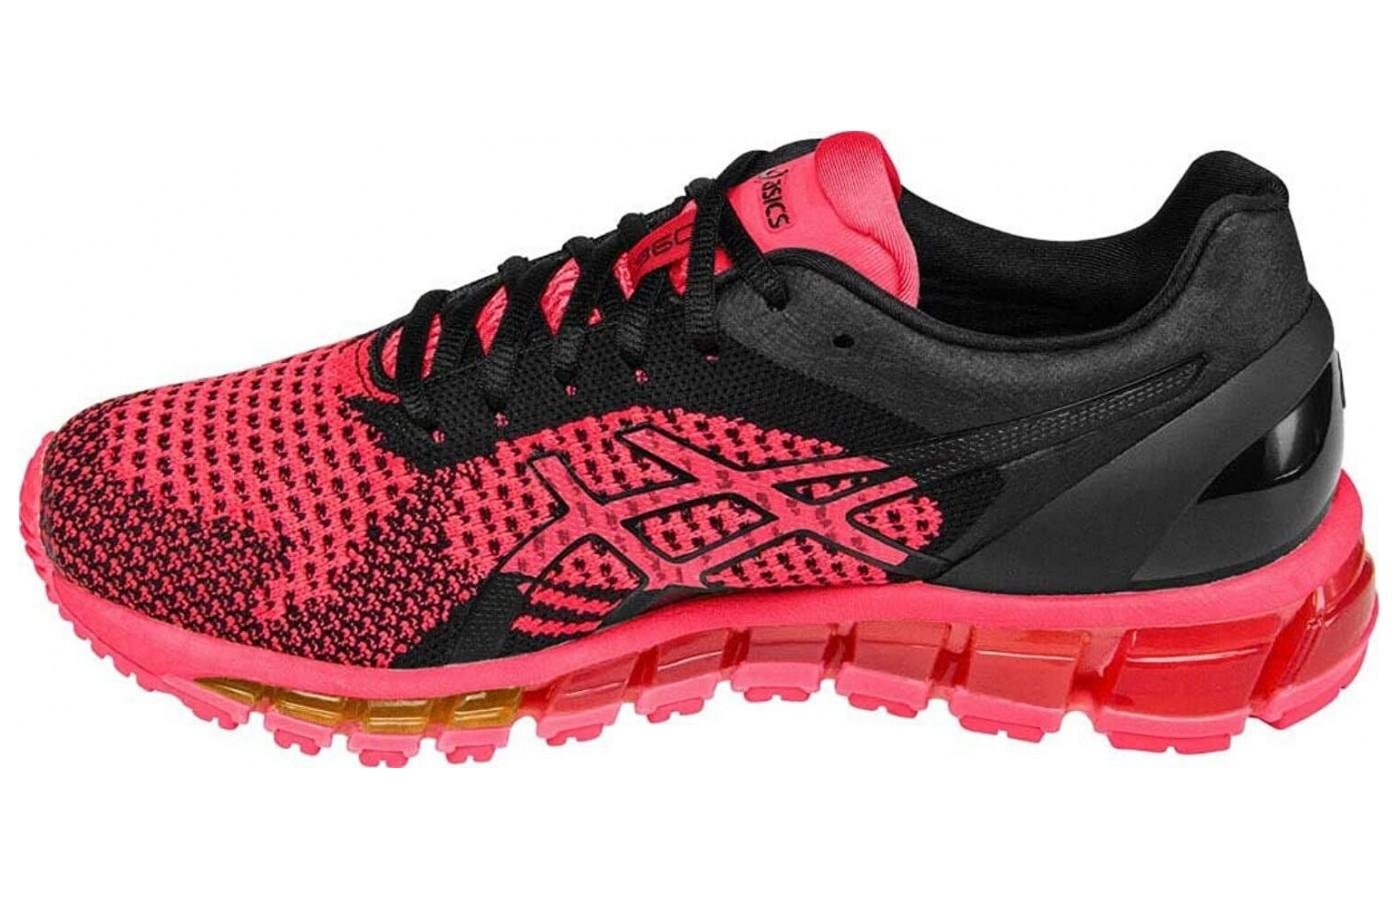 b07156115 The Asics Gel Quantum 360 Knit shown from the top side ...